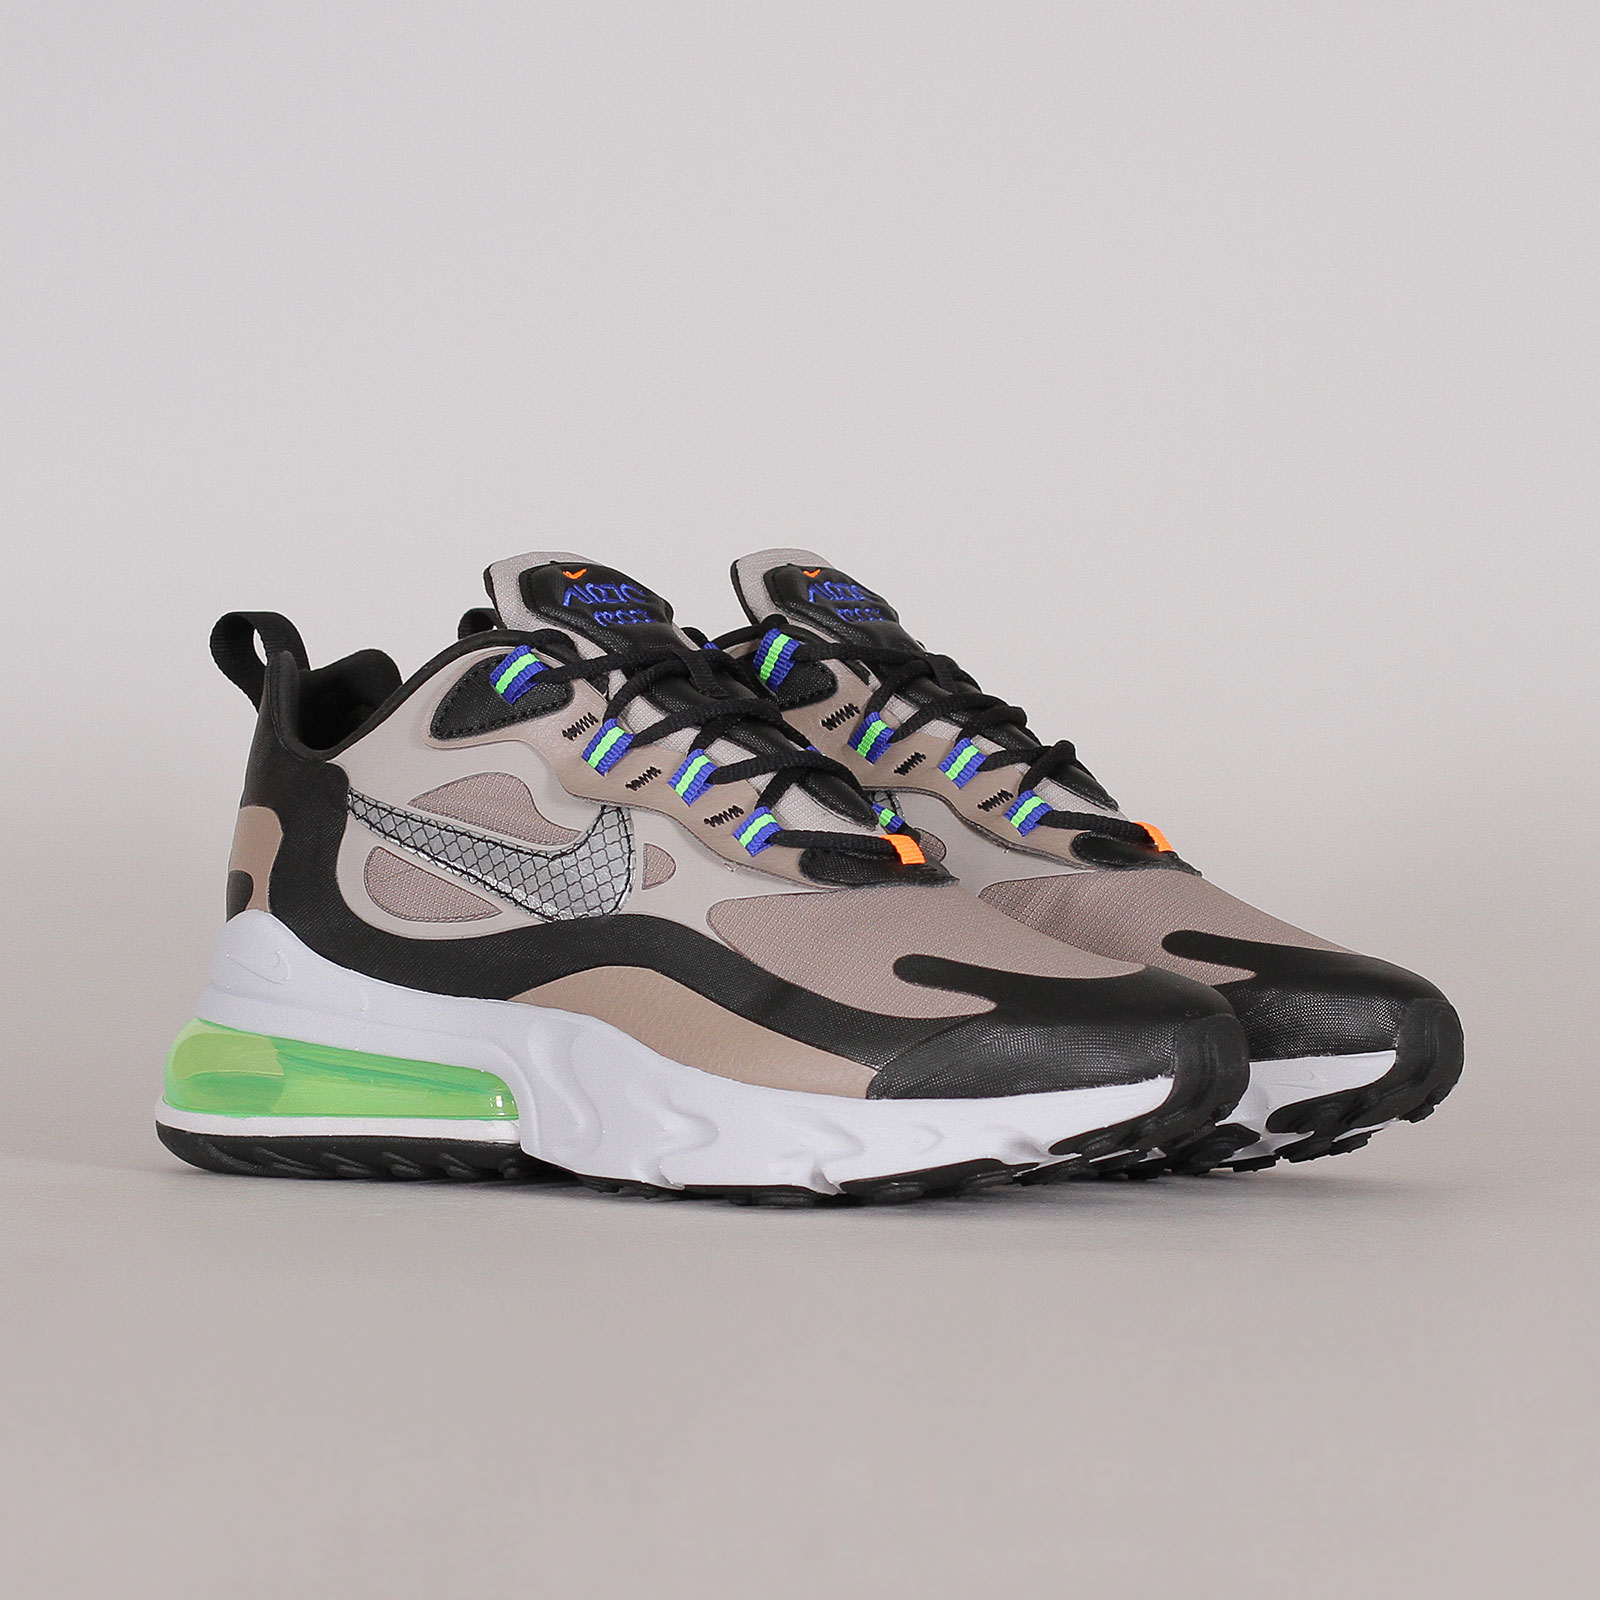 Nike Air Max 270 React Winter Cd2049 200 Shelta